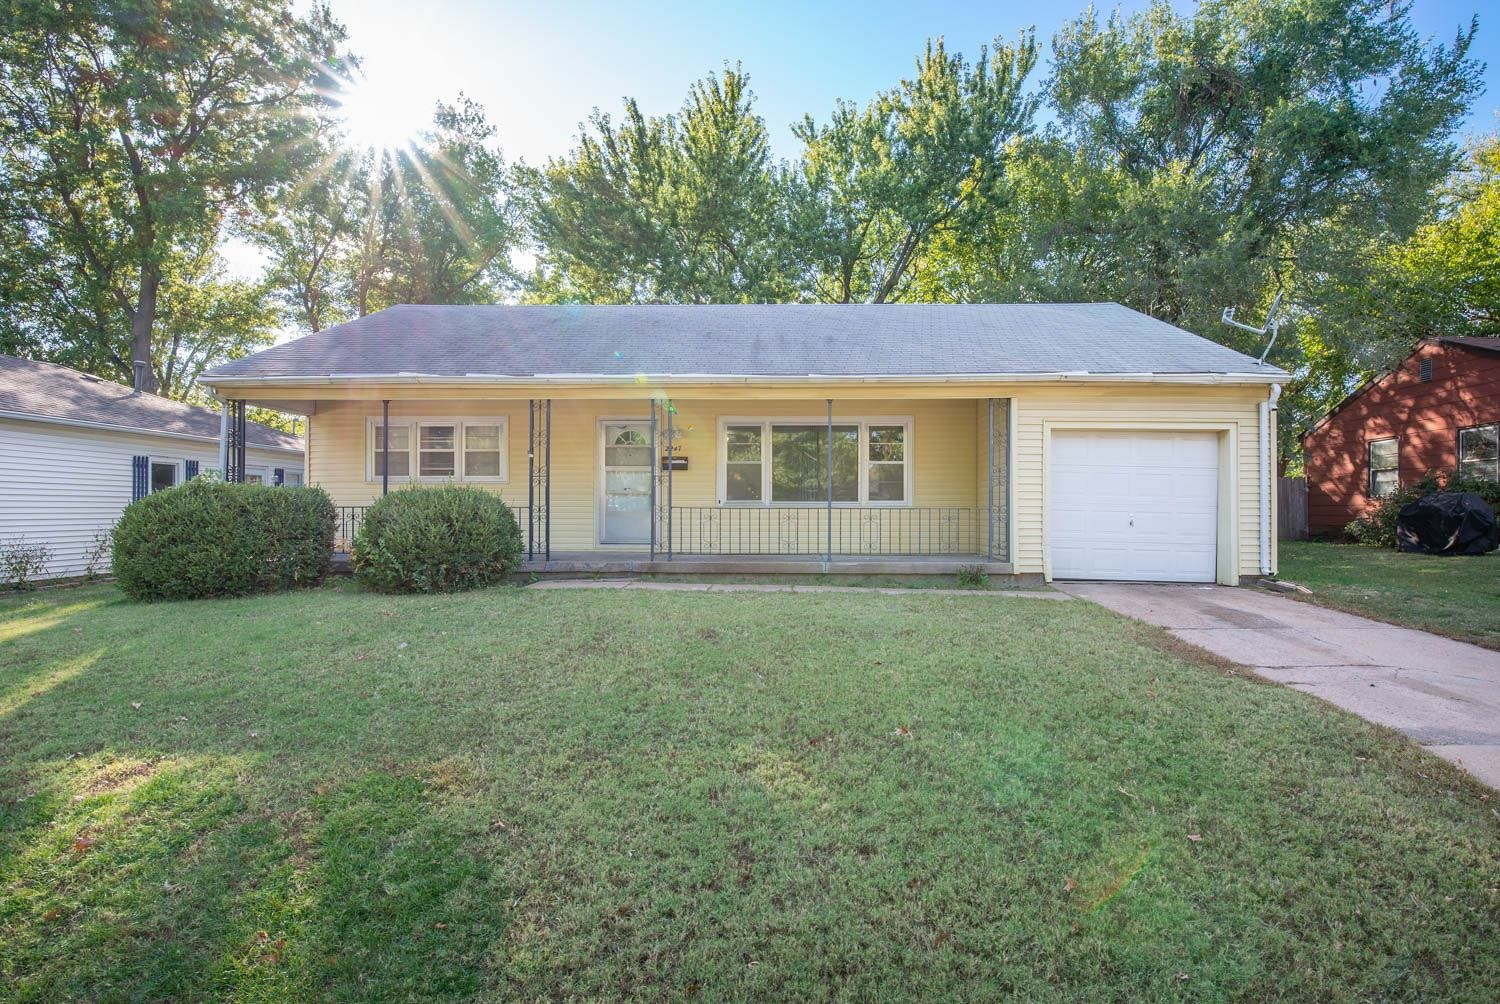 UPDATED & READY TODAY! 3 BEDROOM RANCH WITH OVER 1,000 SQ FT OF UPDATES IN A QUIET AREA!  WALK INTO